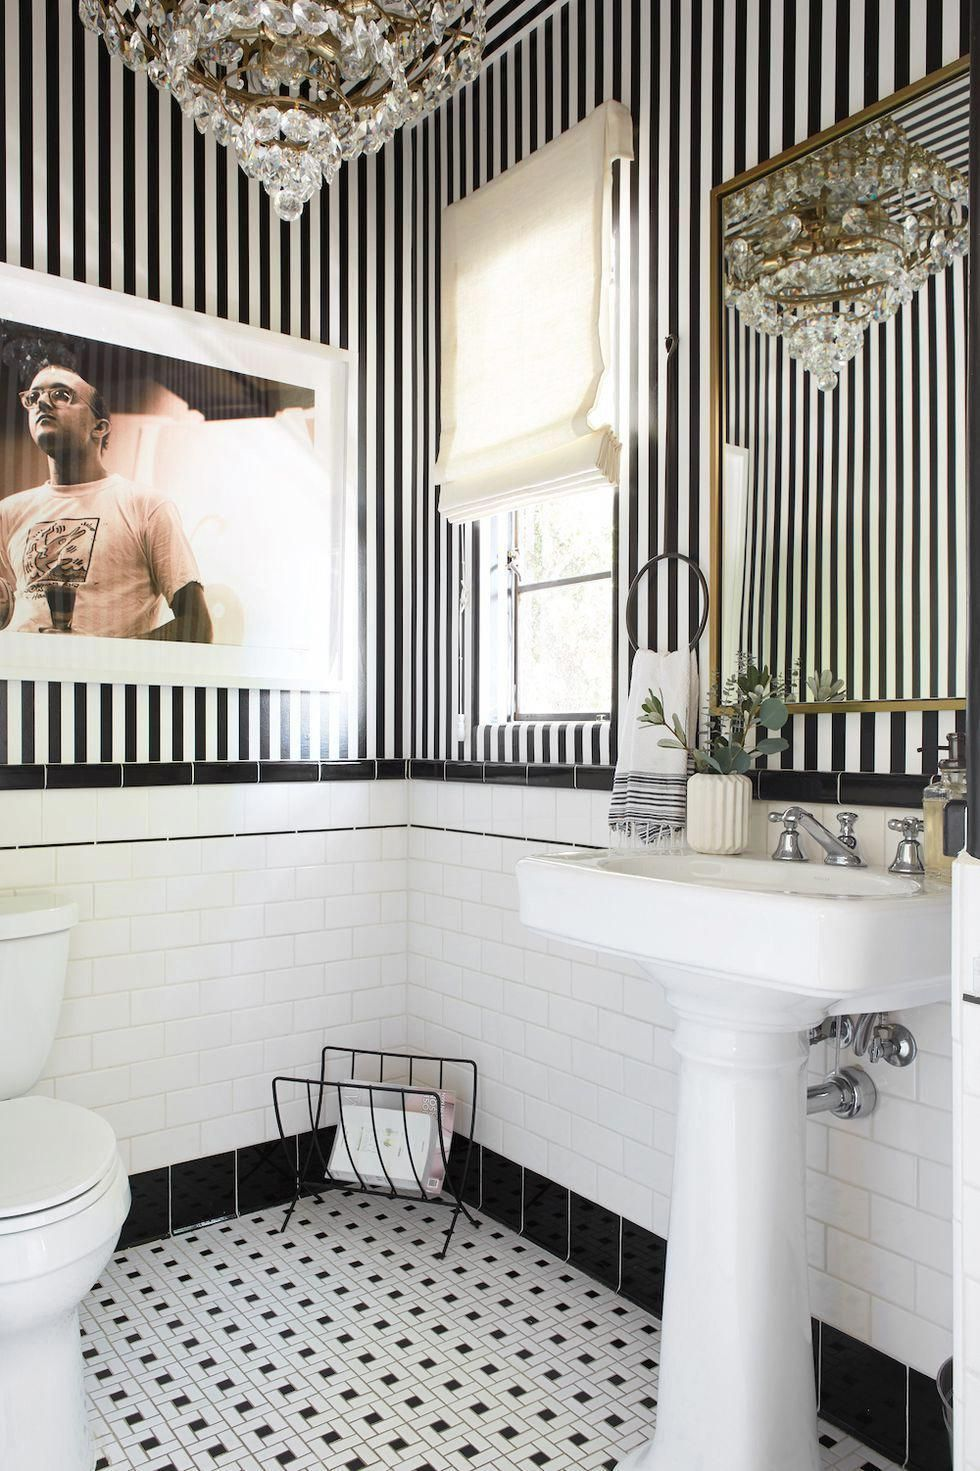 Download the Cool of Black Wallpaper Bathroom for iPhone 11 Pro This Month from masterbathroomideas.implantbirthcontrol.com